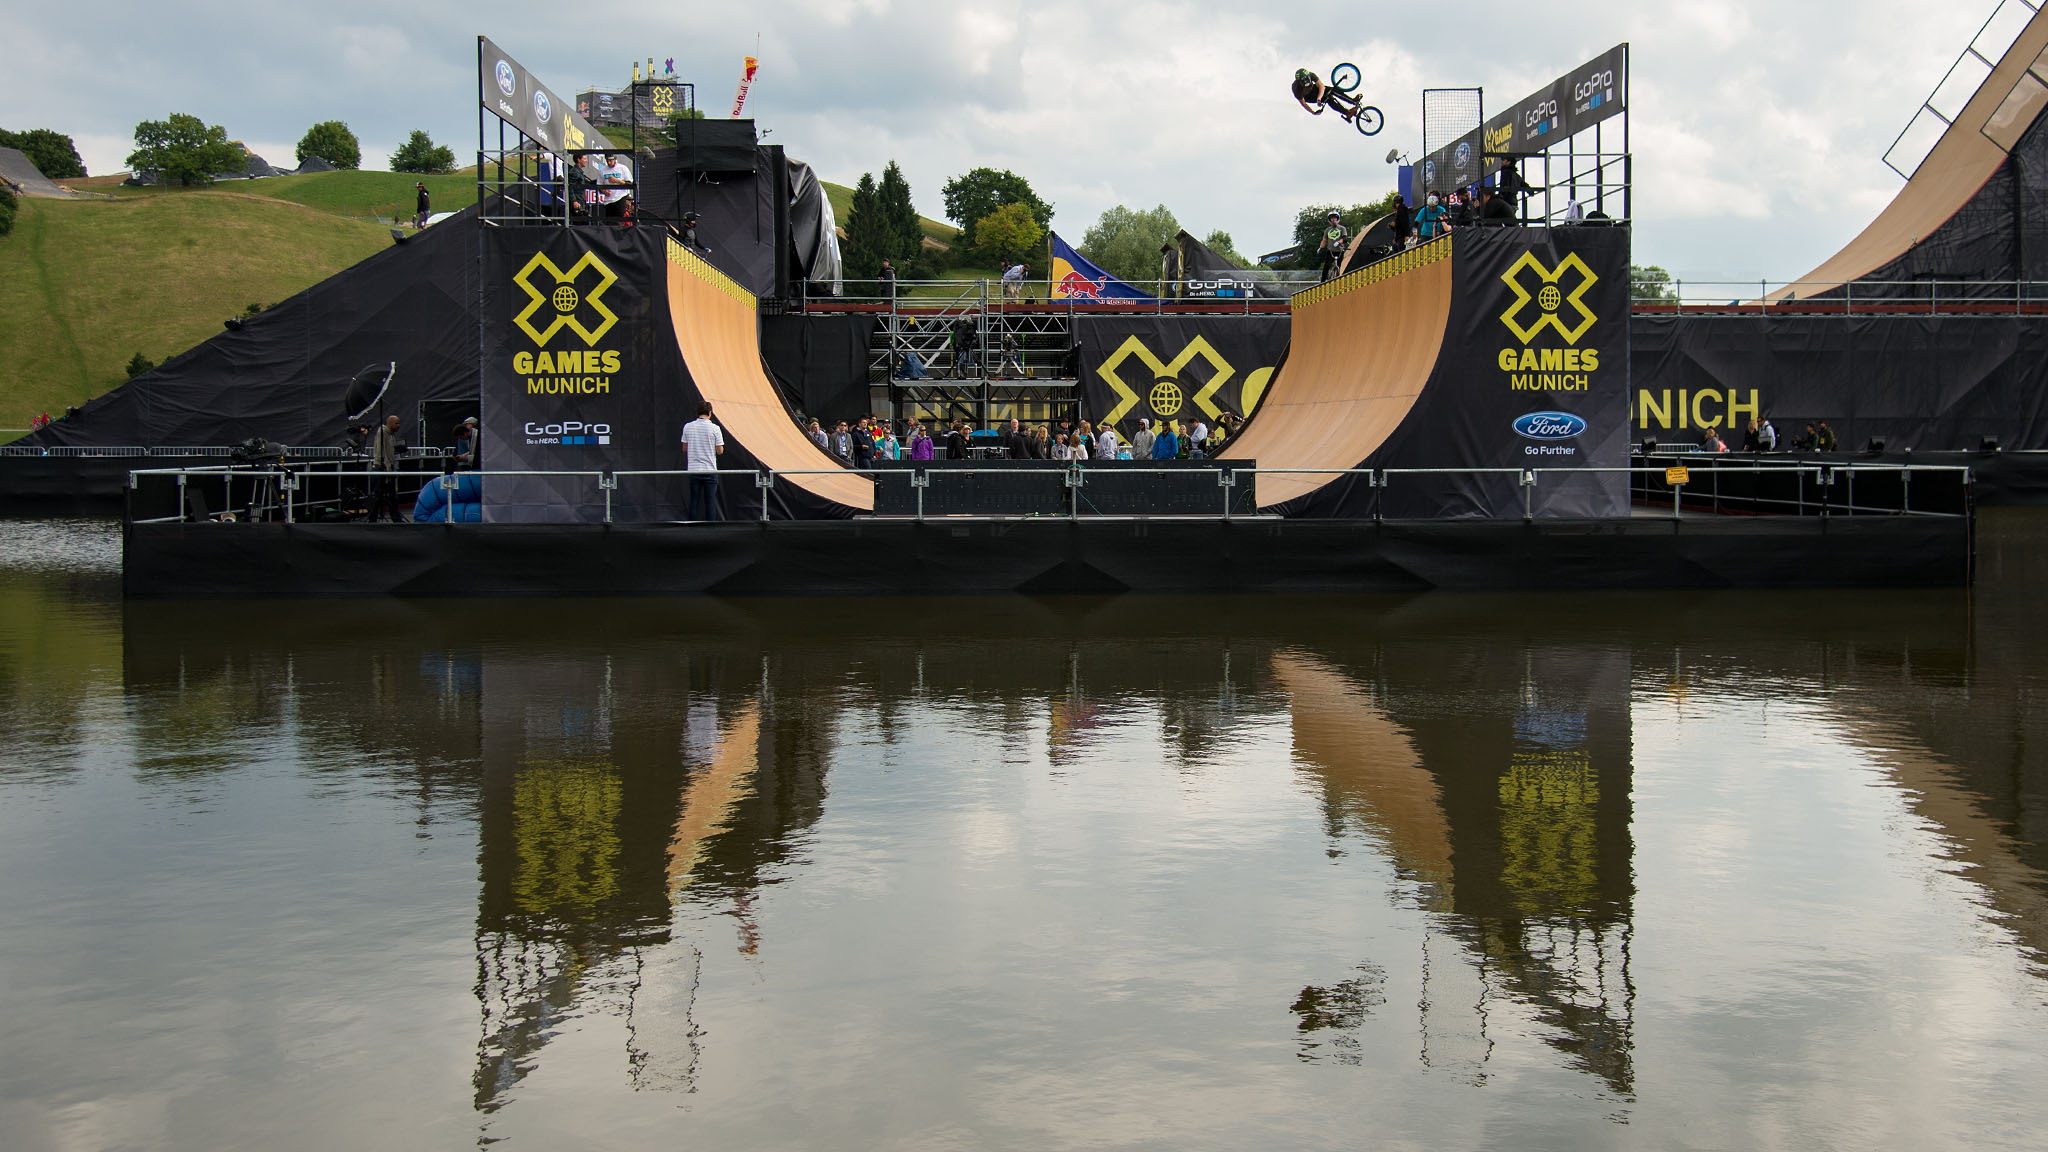 The fact that the vert ramp at X Games Munich will not be hosting a BMX Vert event hasn't kept the BMX Big Air competitors from dropping in for a few fun laps when the opportunities have presented themselves. The two ramps are located right next to each other, after all.